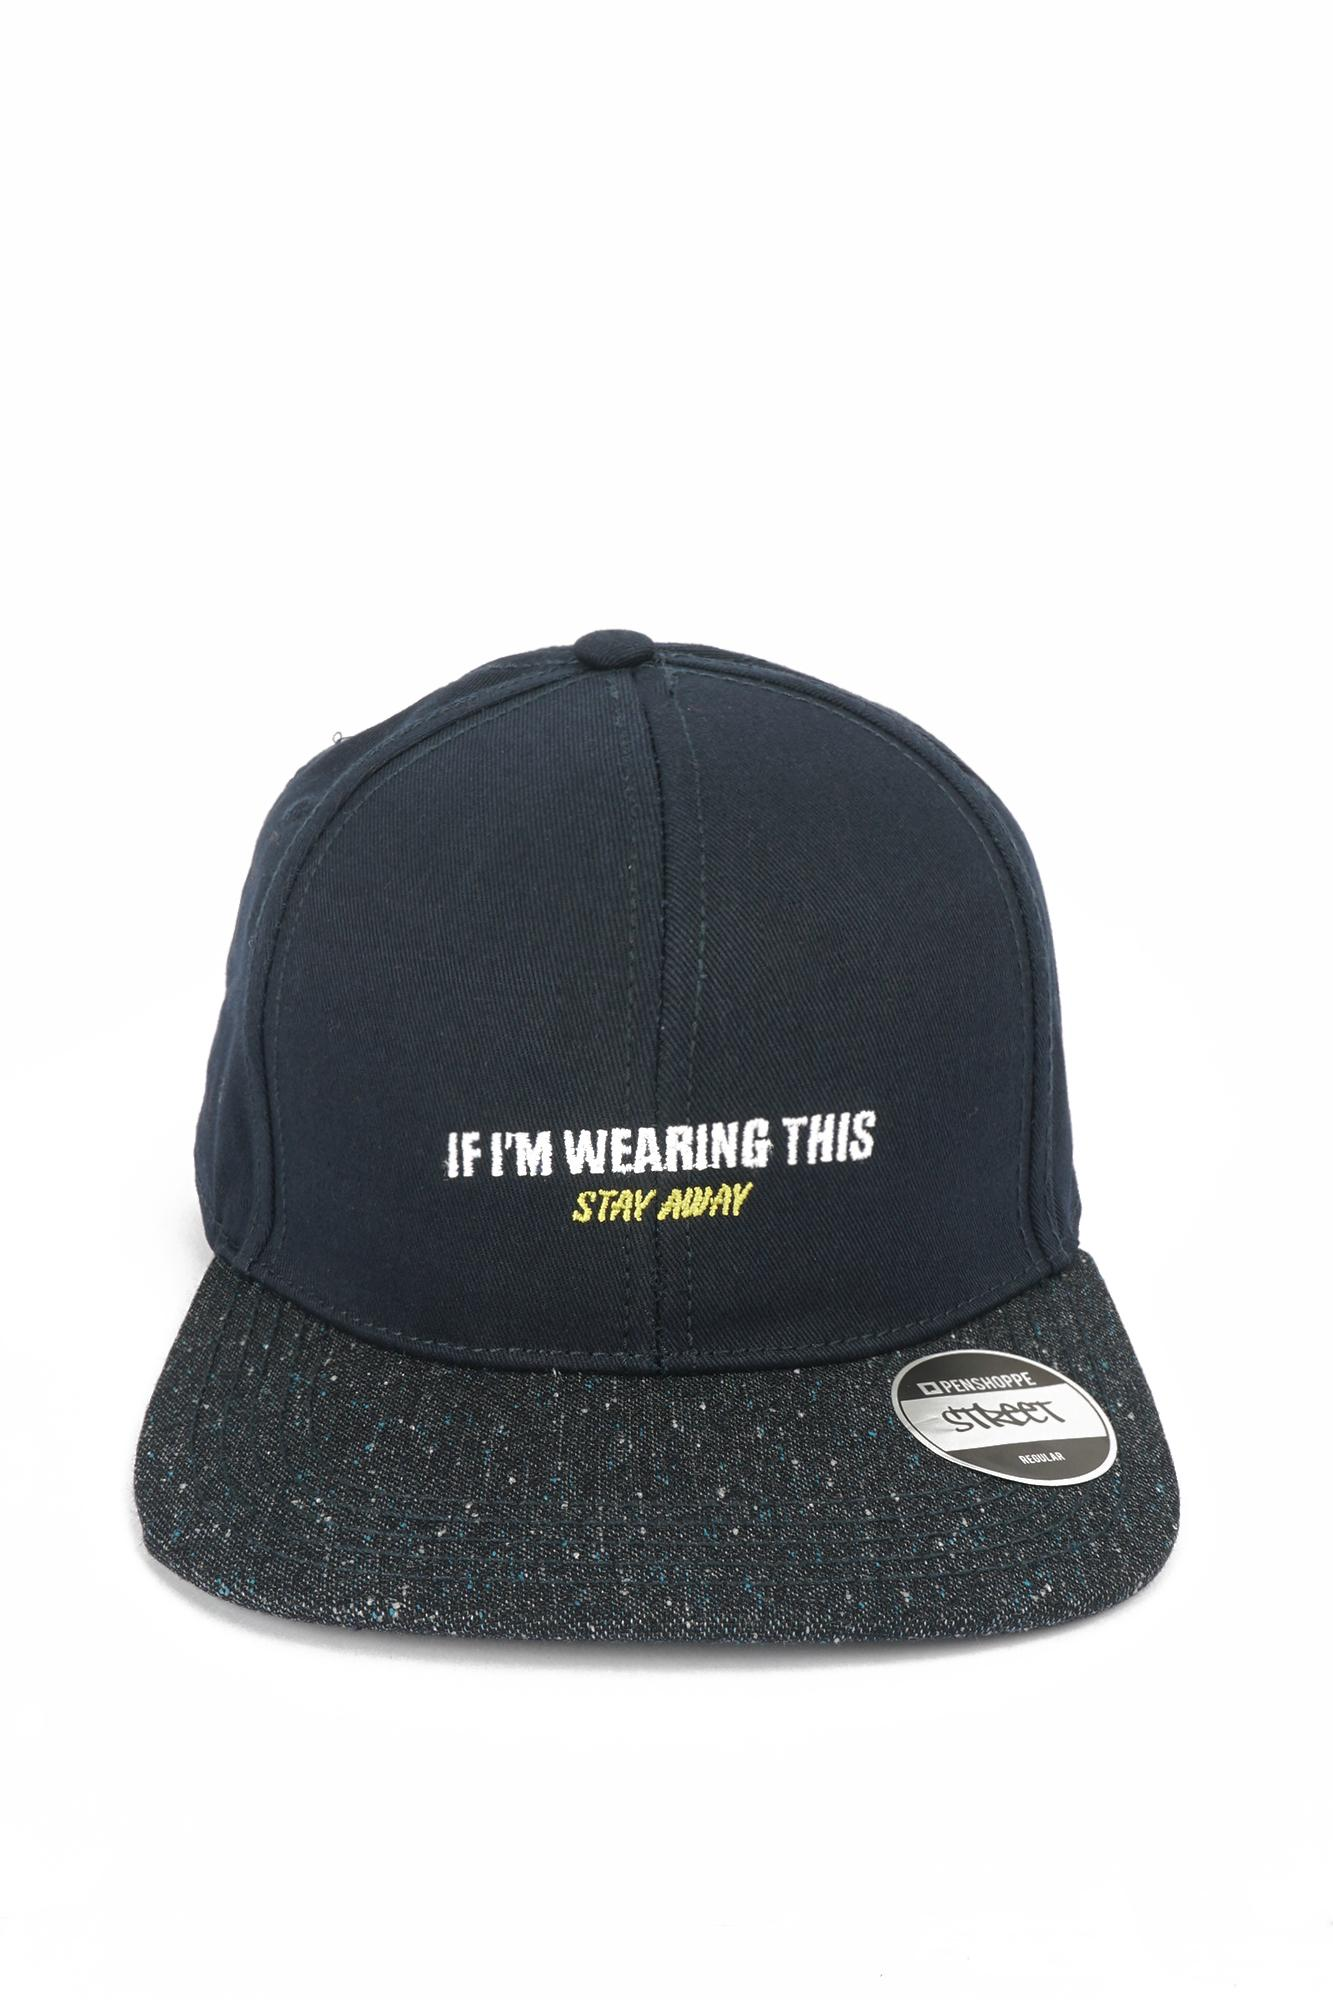 13dae9a11be Hats for Men for sale - Mens Hats online brands